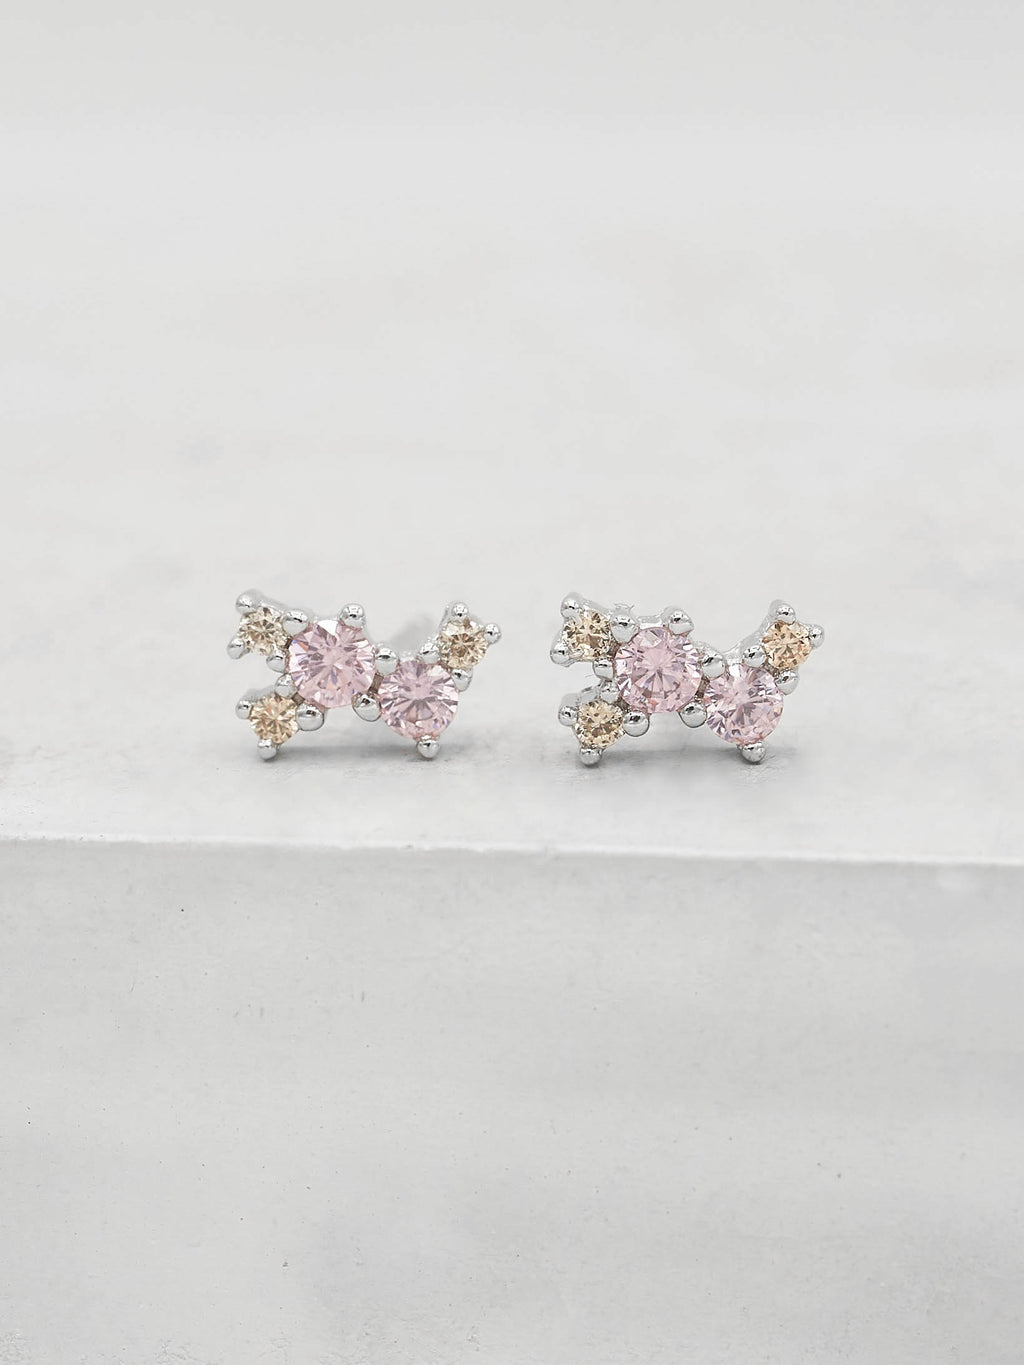 Rhodium Plated Brass Pink and Champagne CZ Cubic Zirconia Twilight Style Stud dainty Earrings by The Faint Hearted jewelry